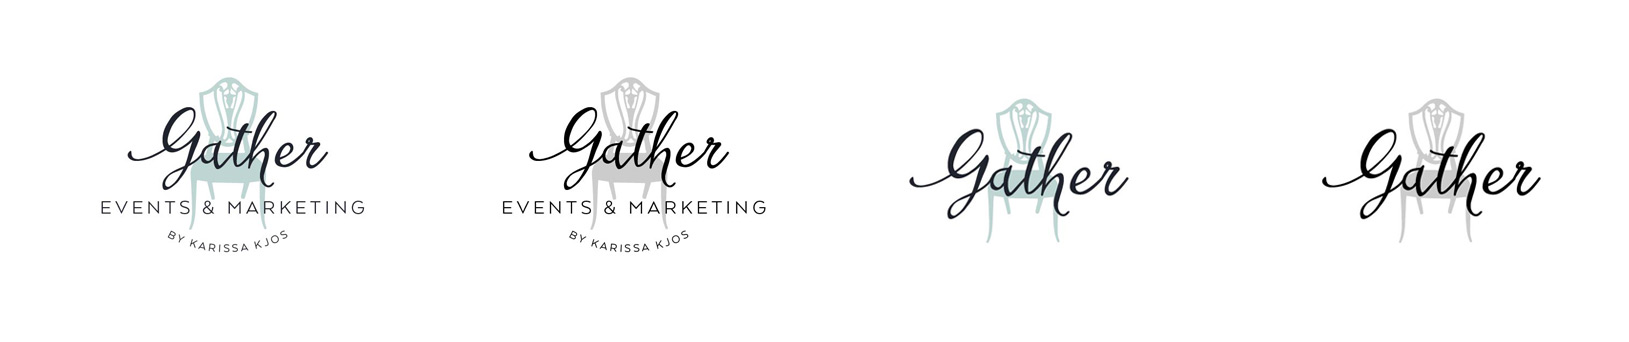 Gather Events & Marketing Logo | Mint Green Logo Design for Event Planning & Marketing Company with Chair Icon